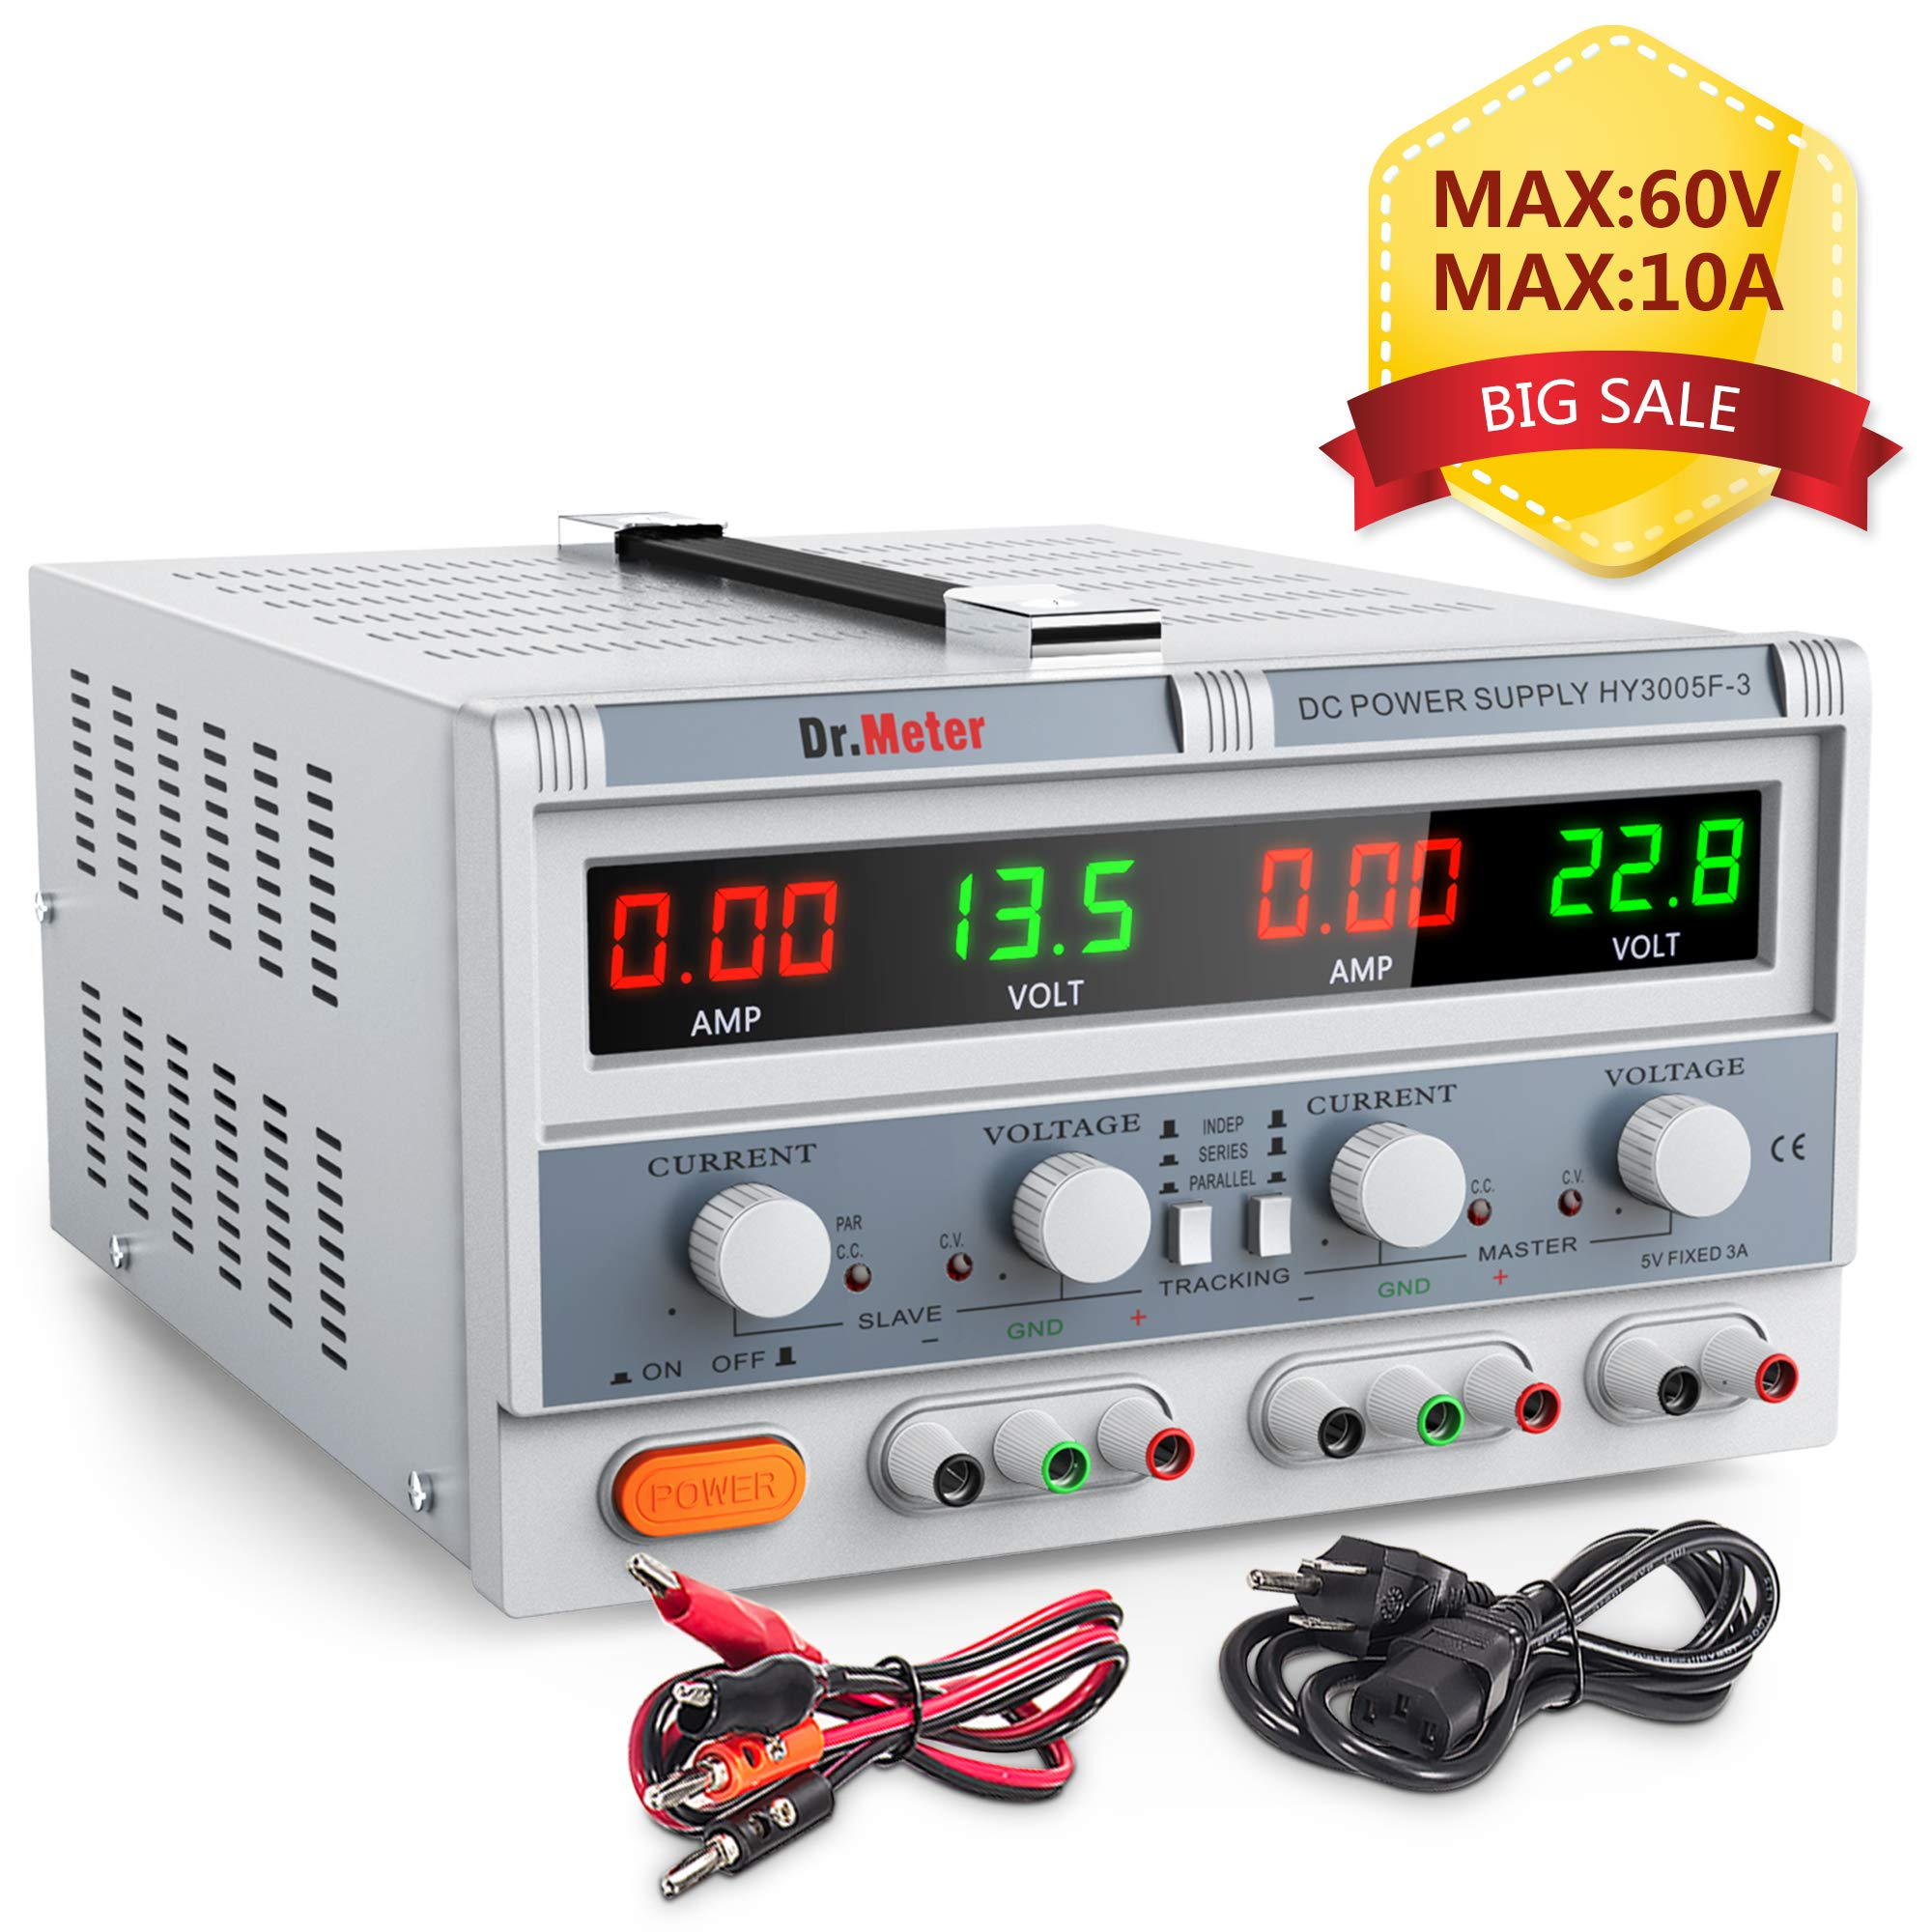 Dr.meter HY3005F-3 Triple Linear DC Power Supply, 30V, 5 Amp, Input voltage 104-127V, Alligator to Banana and AC Power Cable Included